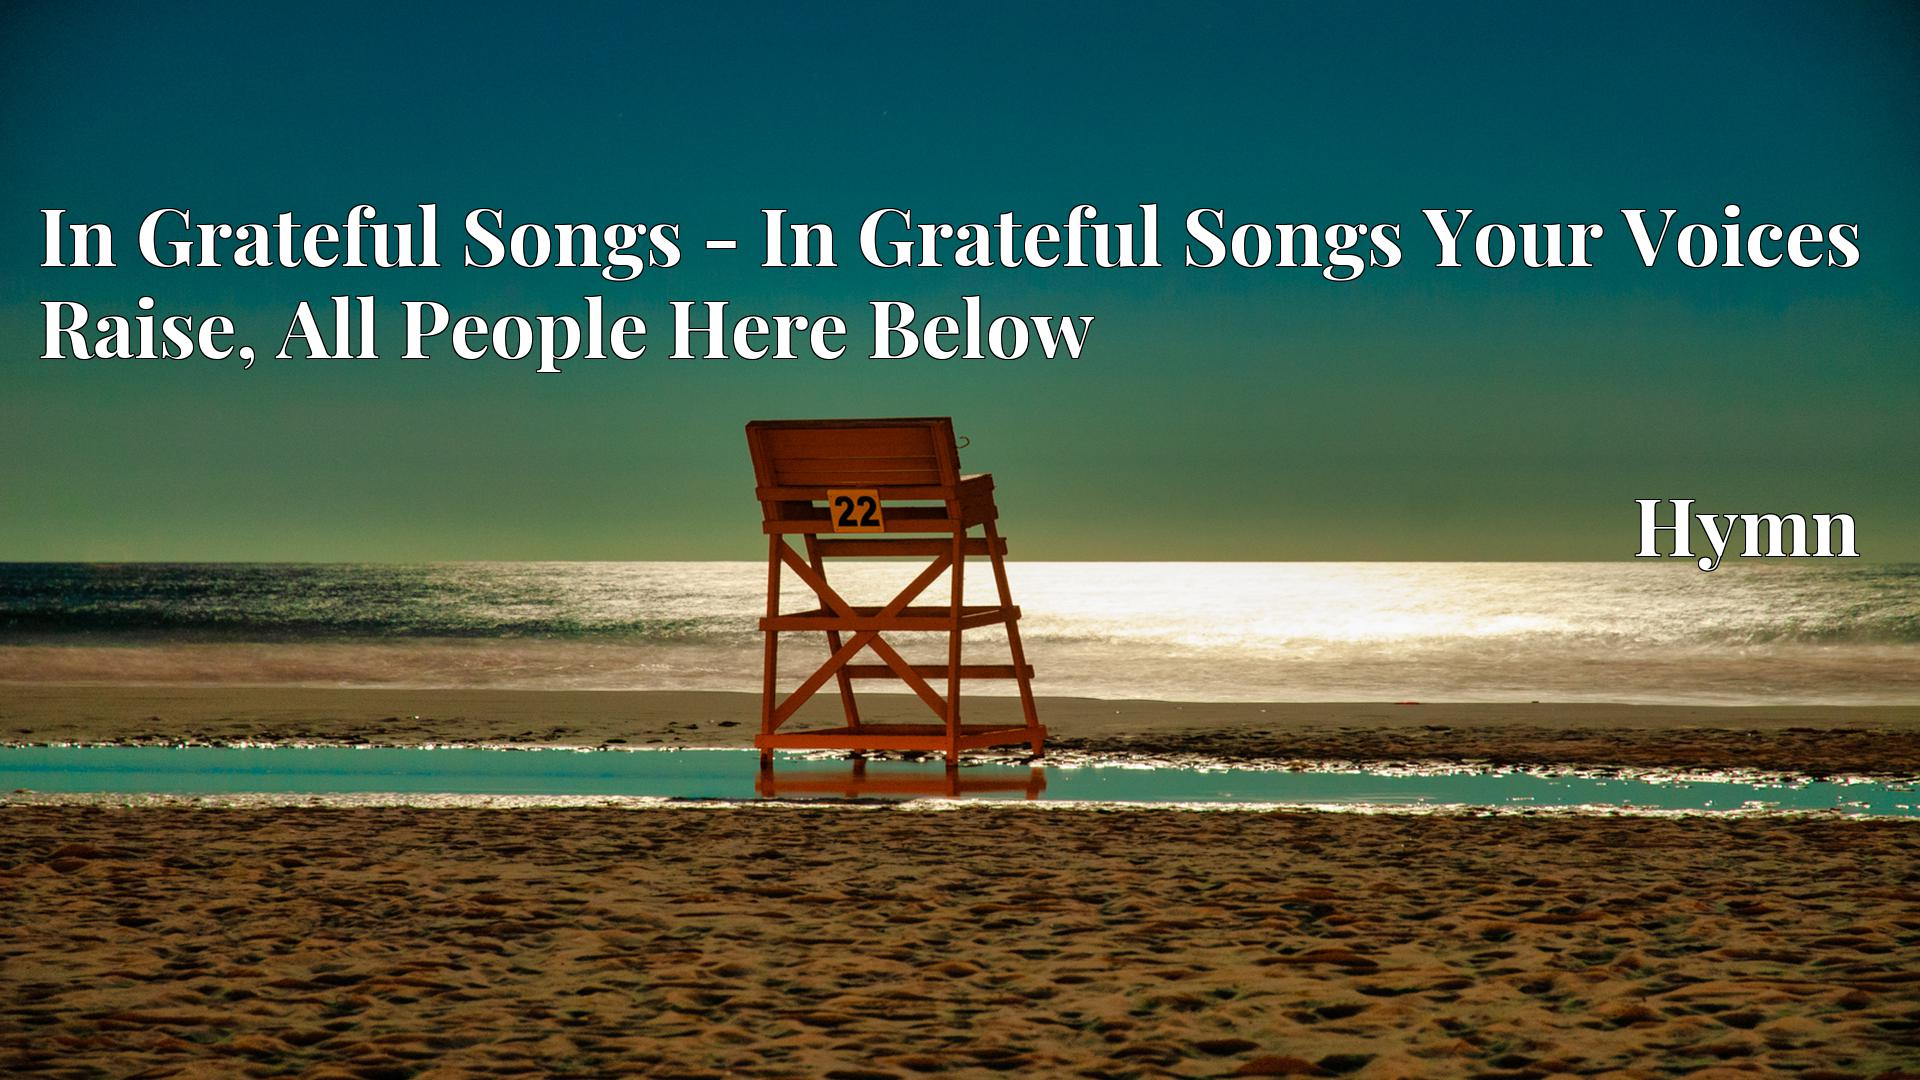 In Grateful Songs - In Grateful Songs Your Voices Raise, All People Here Below - Hymn